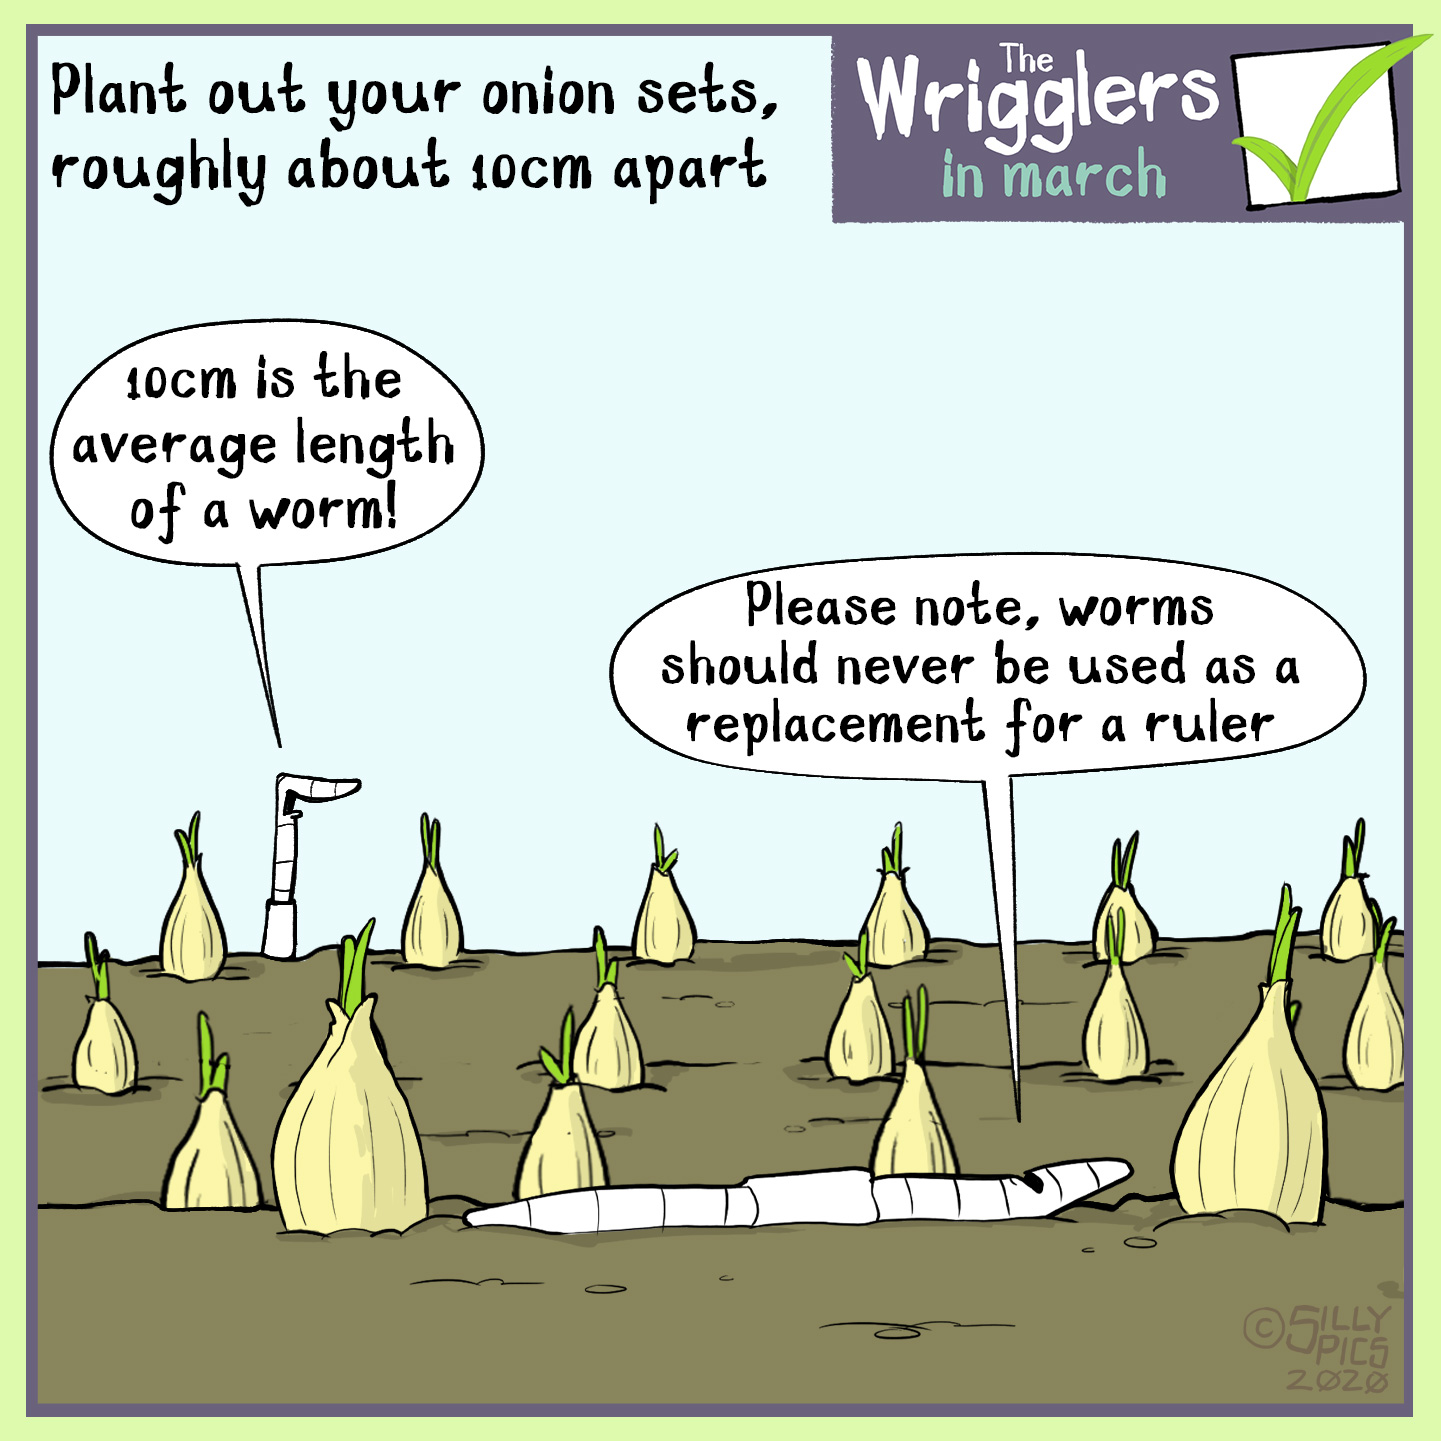 Cartoon about spacing your onion sets 10 cms apart – roughly the size of an average eartworm – one worm says to the other, On no account should an earthworm be a replacement for a ruler